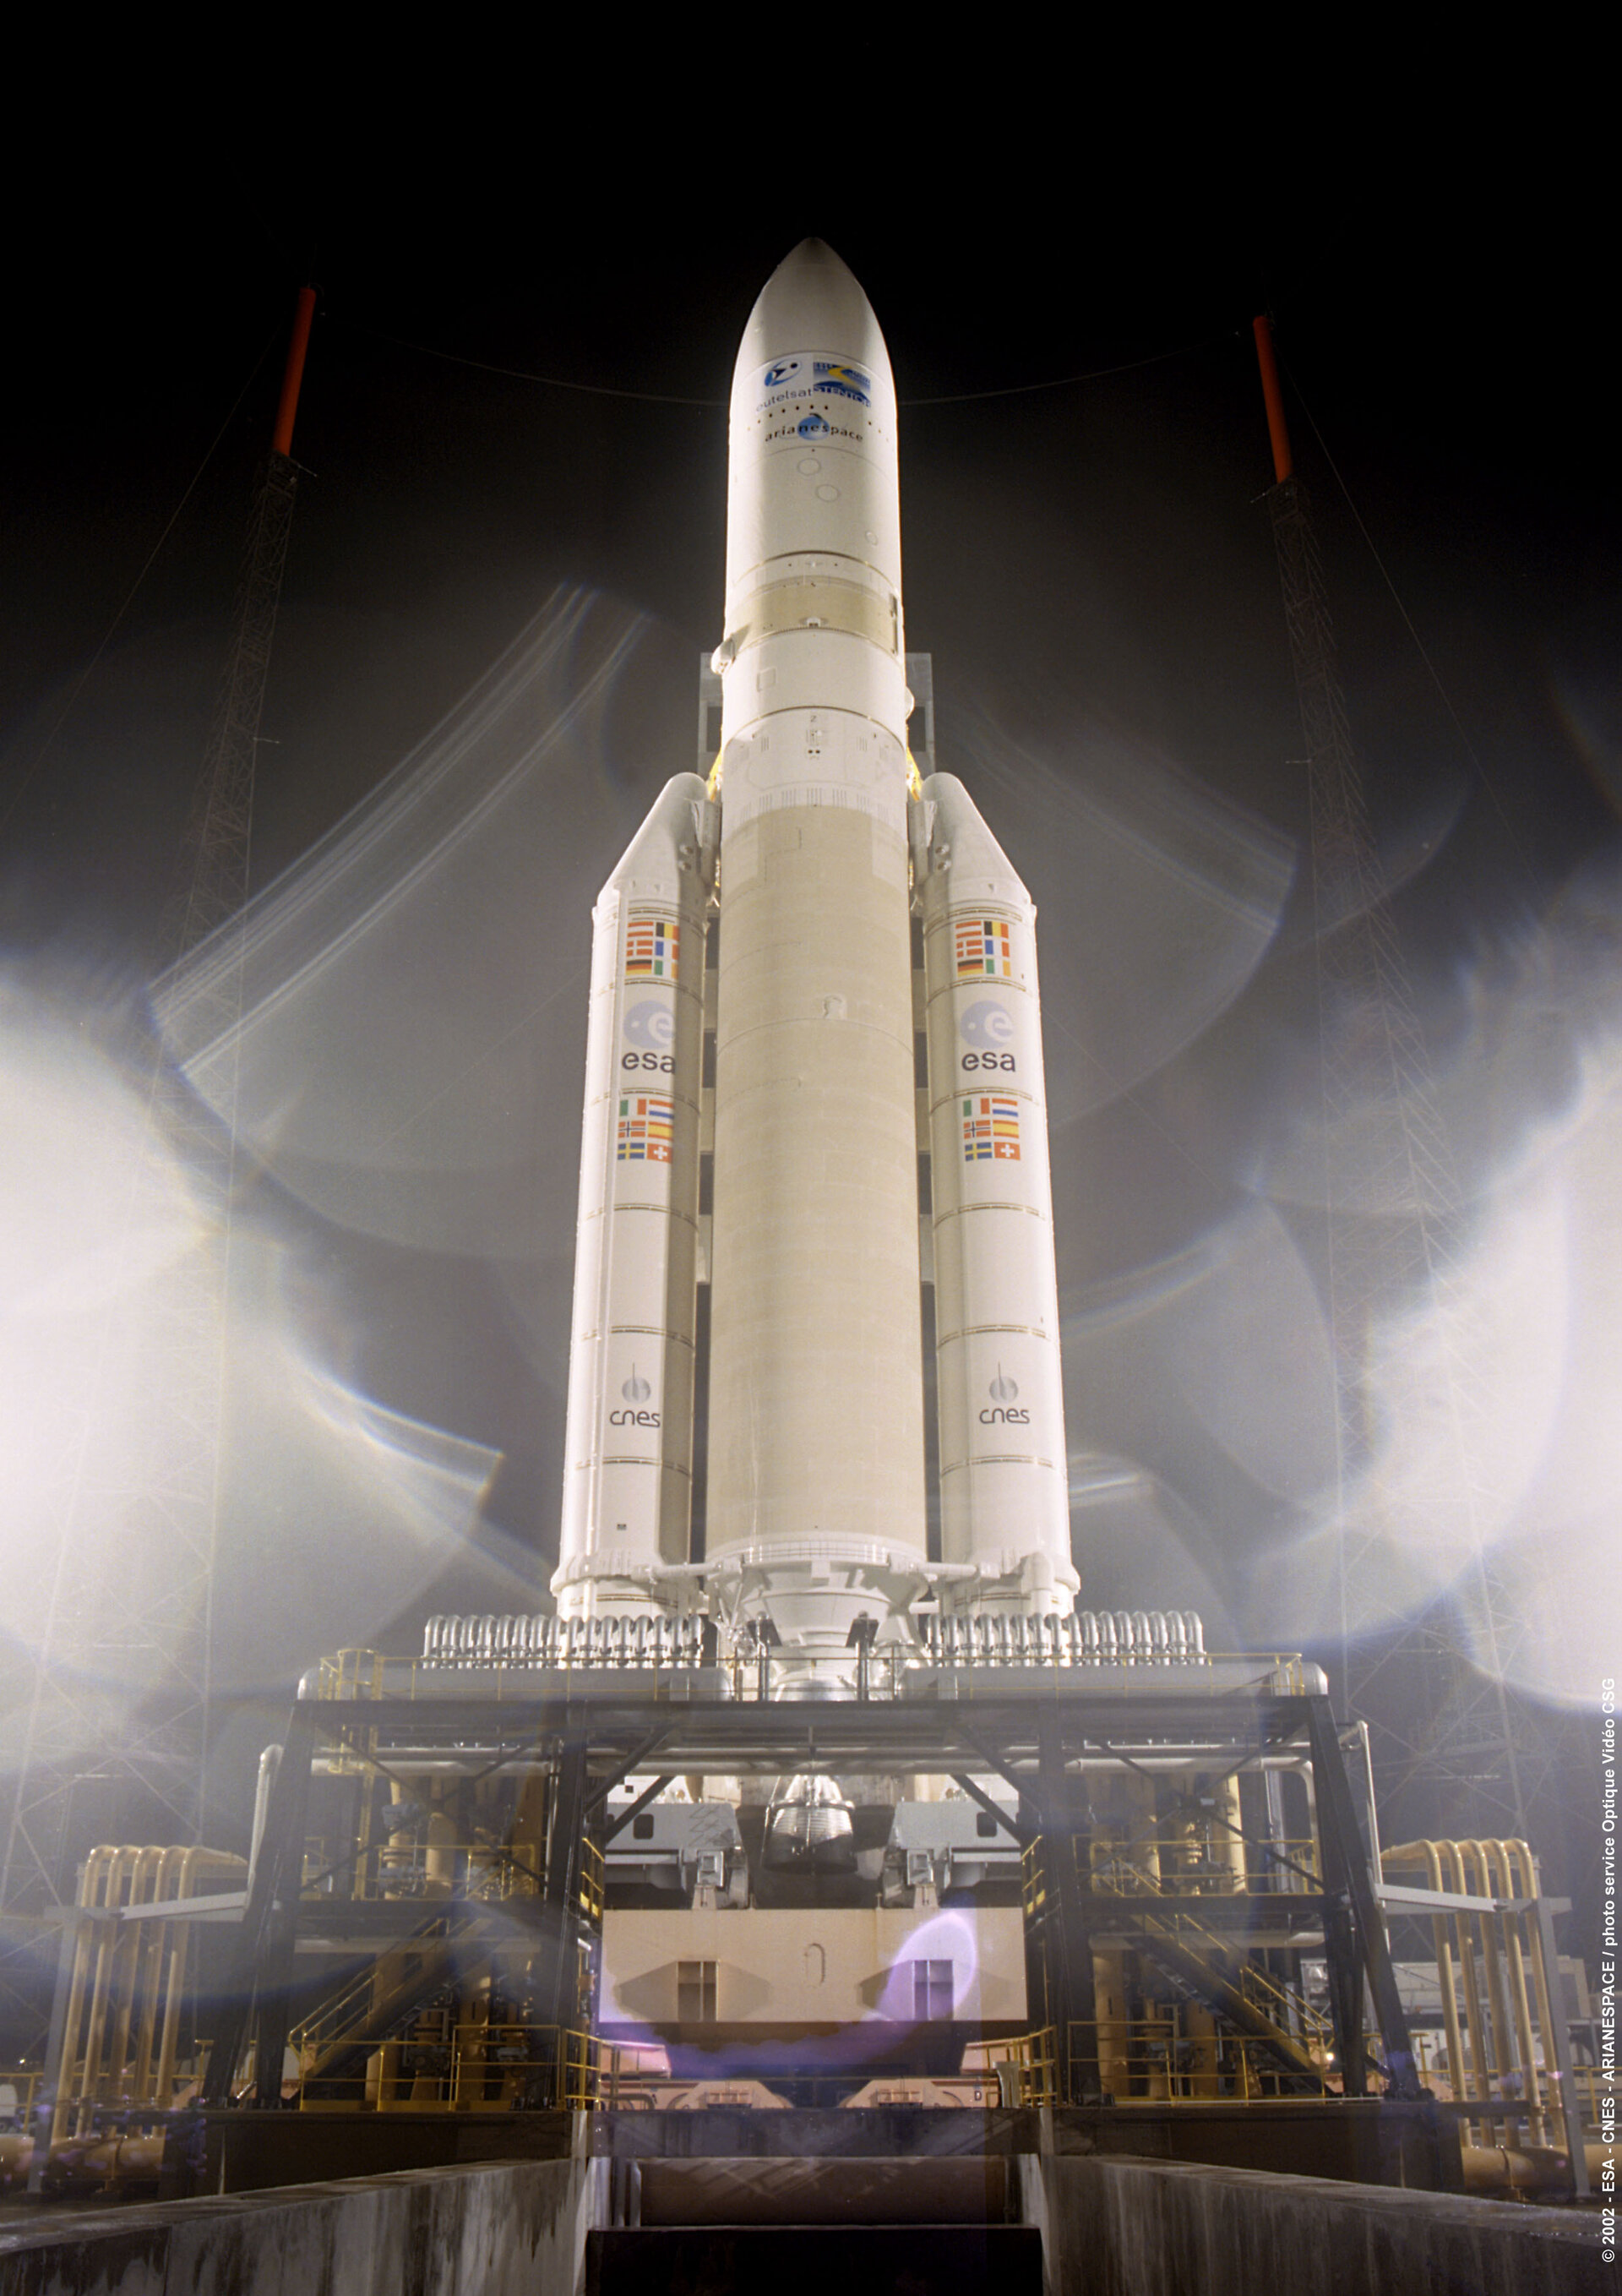 Flight 157 Ariane 5 ECA on the launch pad